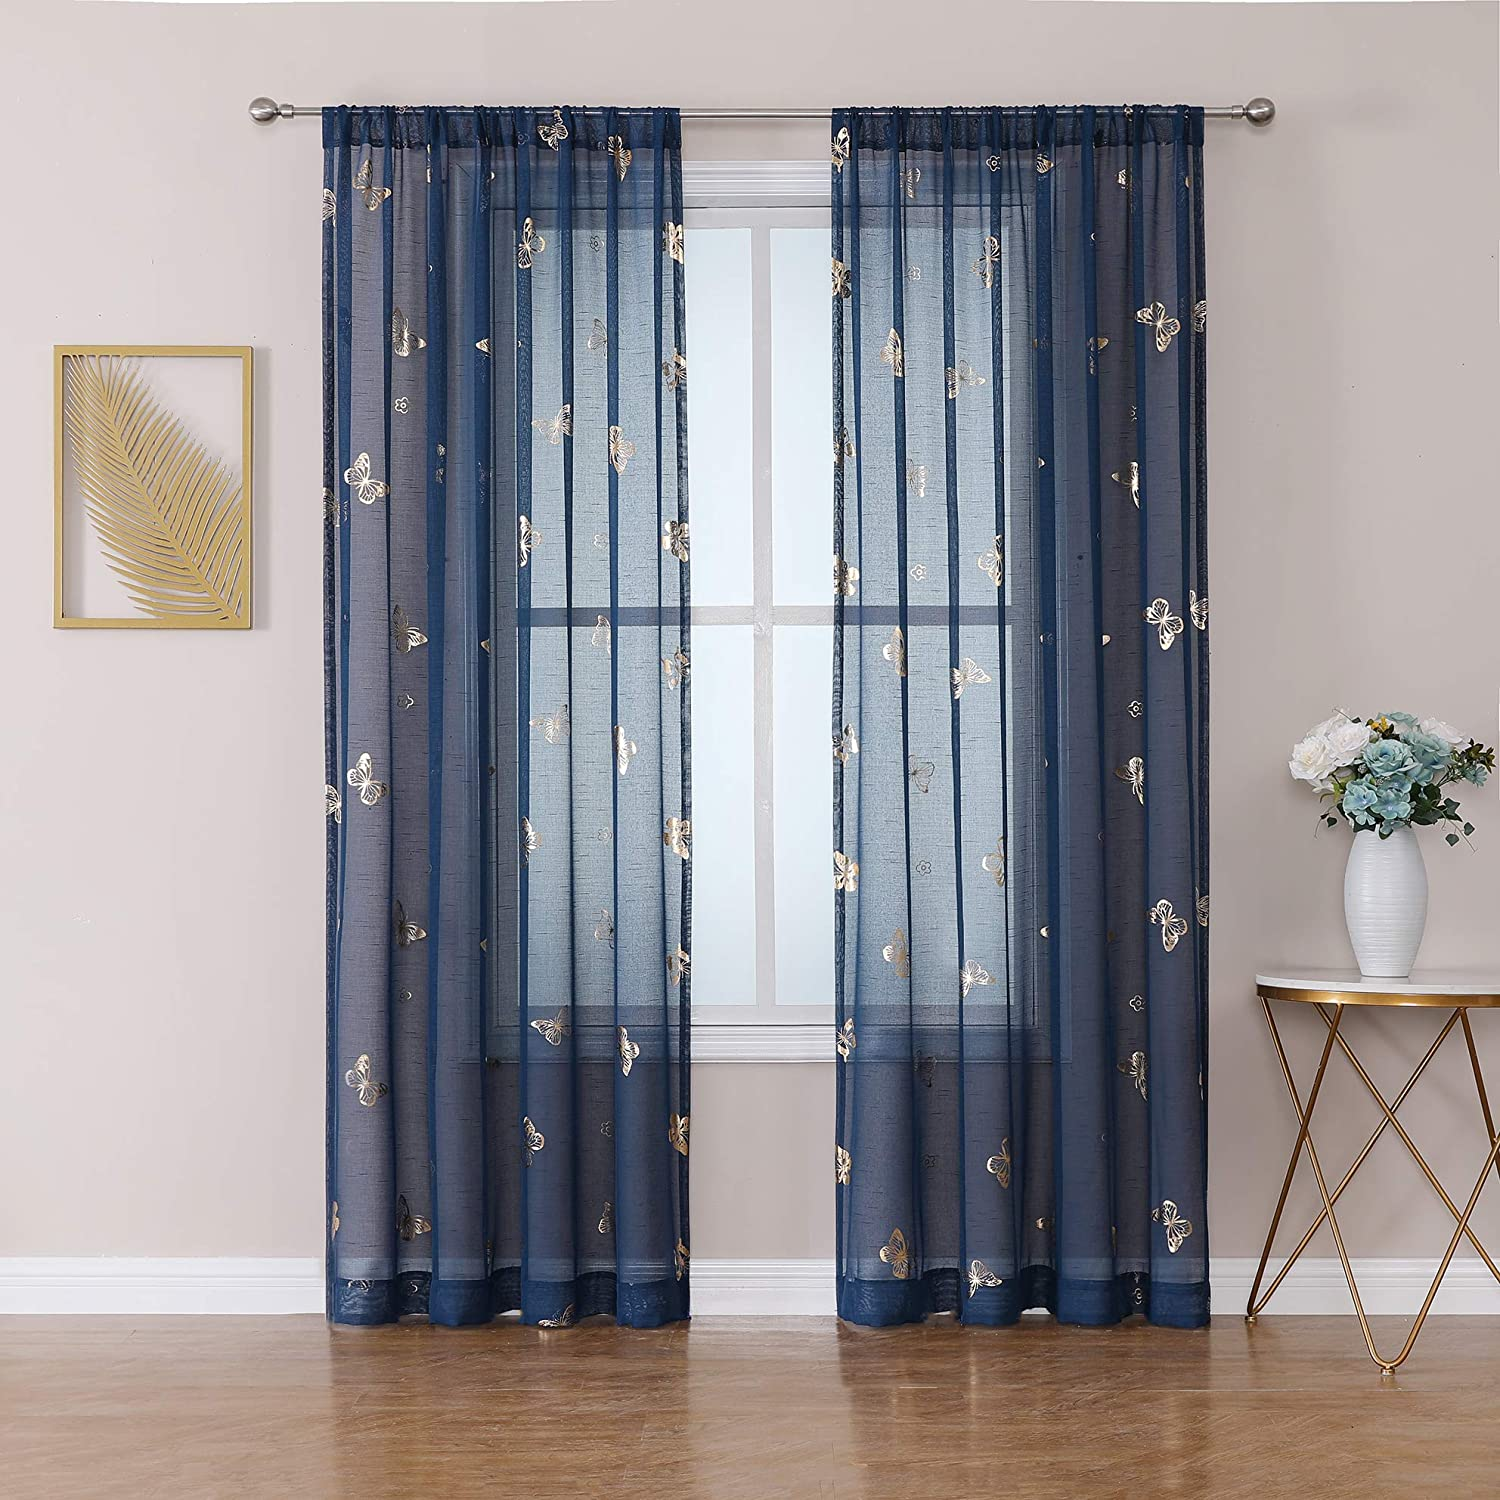 Jubilantex Window Sheer Curtain 84 Inches Long with Twinkle Gold Metallic Print Butterfly Juvenile Drapes, Rod Pocket Linen Texture Voile for Nursery, Kids Room, Living Room, Bedroom, 2 Panels, Blue